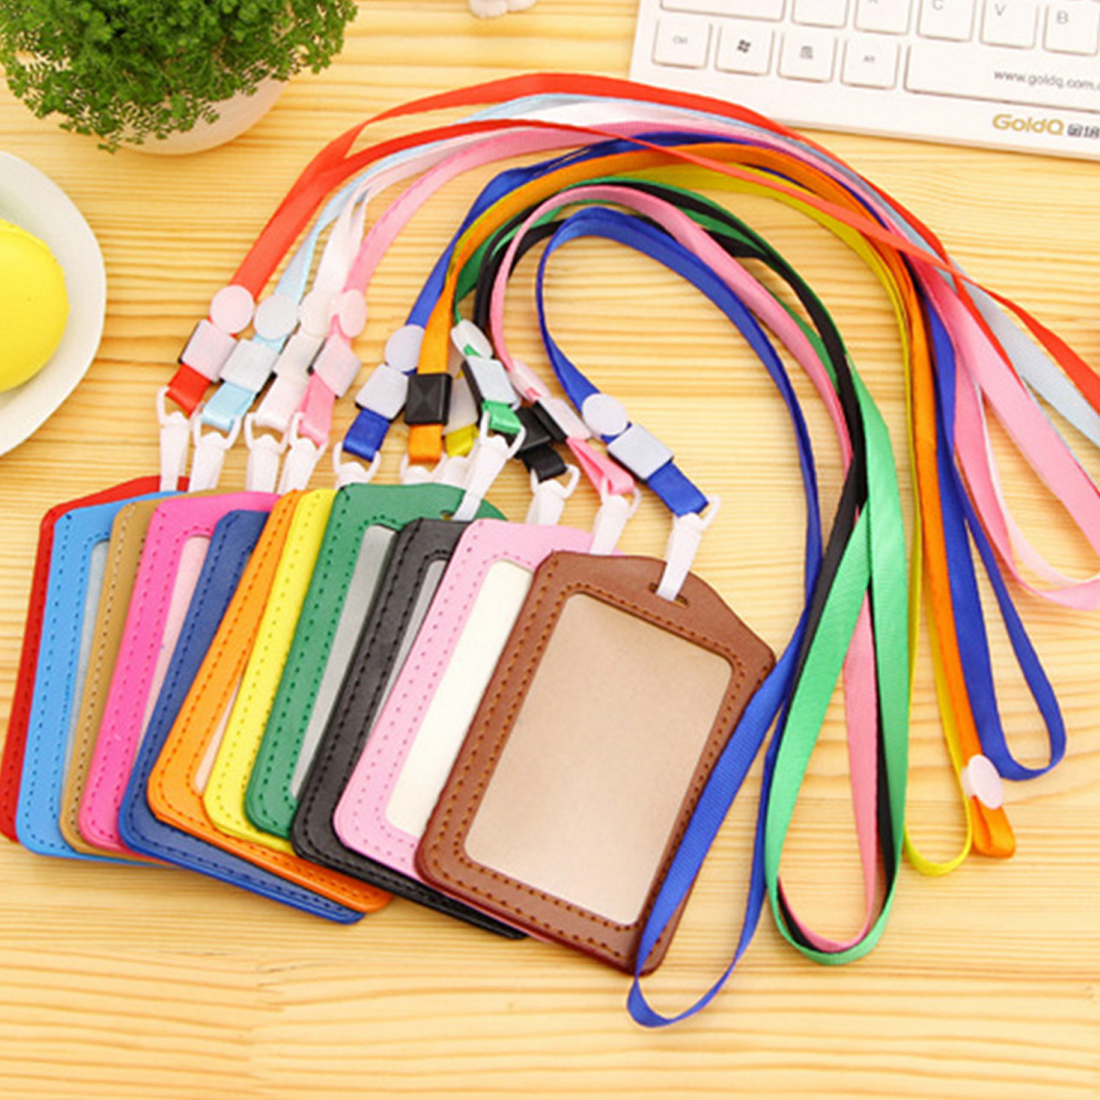 1pcs Colorful Credit Card Holders Women Men PU Bank Card Neck Strap Card Bus ID Holder Students Kids Identity Badge With Lanyard